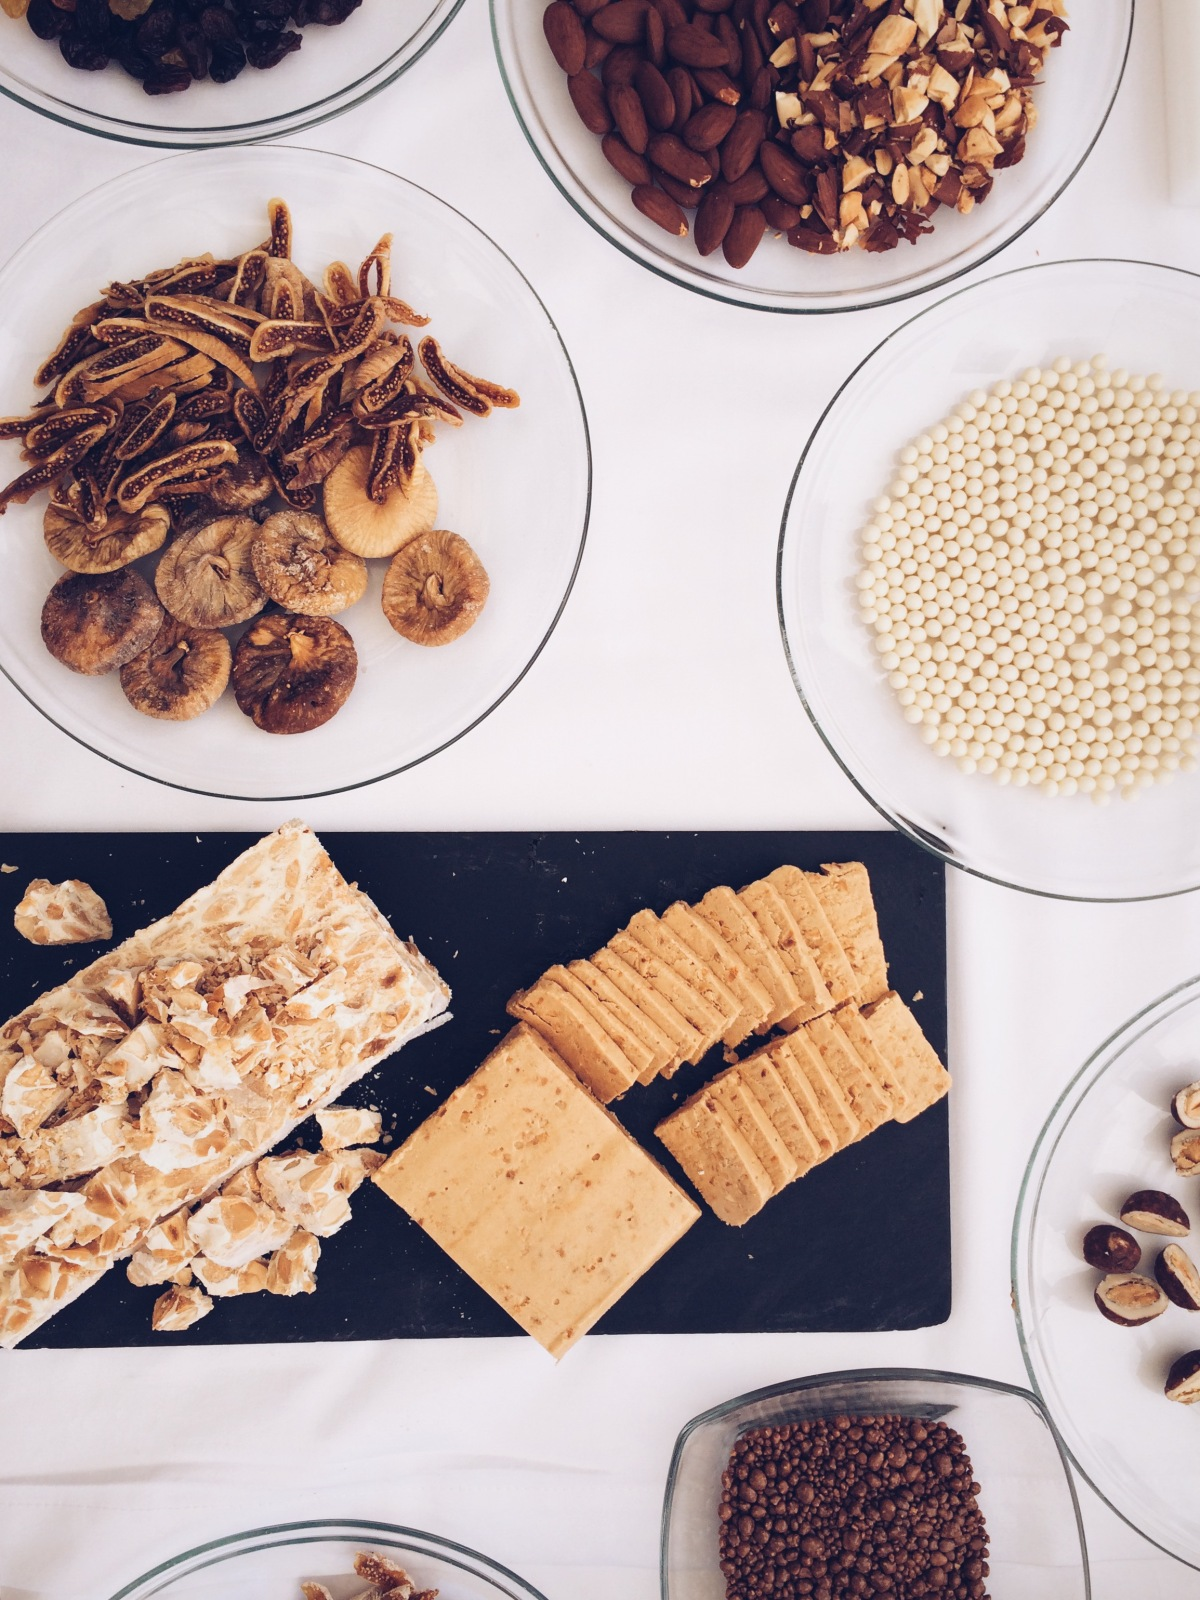 Fruits, nuts, turrón